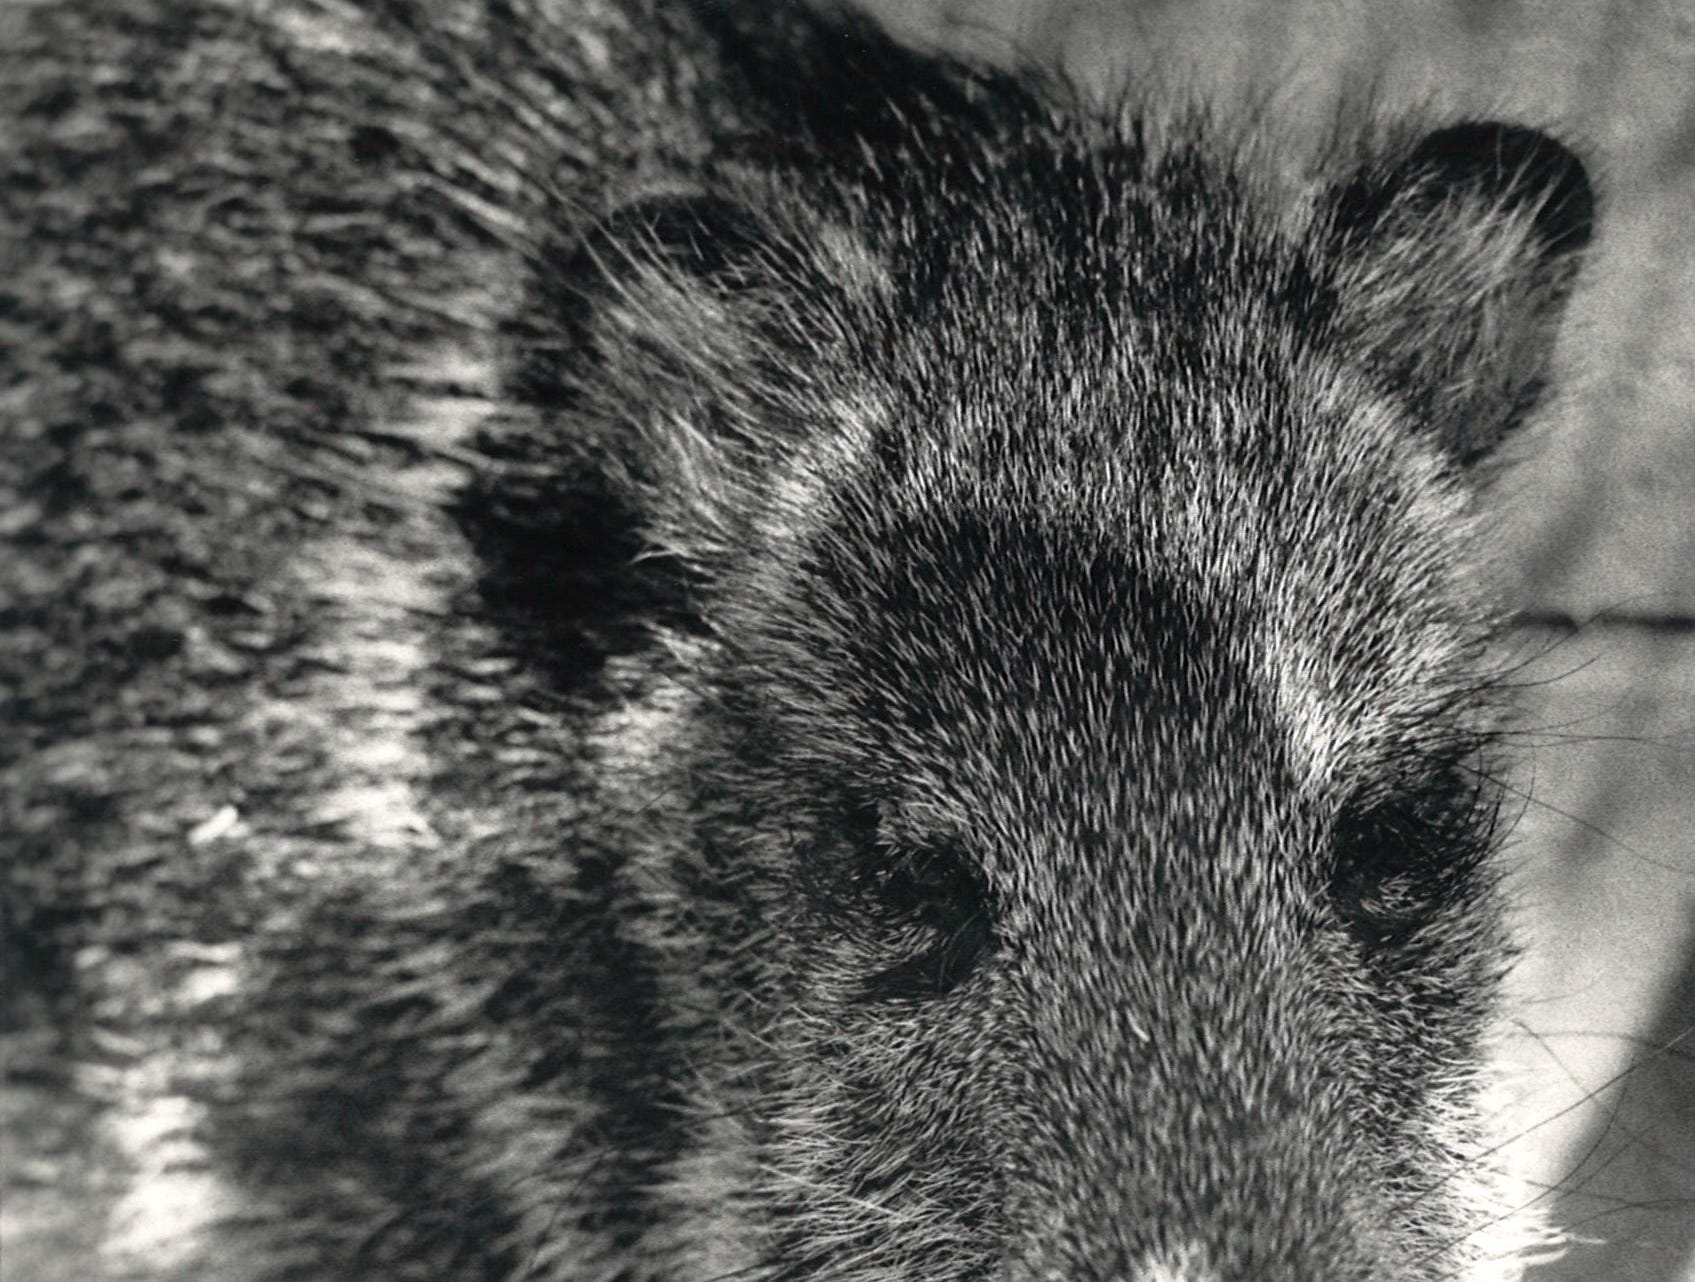 This young javelina started down the Caller-Times photographer while housed at Corpus Christi's Animal Control offices in February 1987 after being captured in the Hillcrest area. The javelina was relocated to the King Ranch.